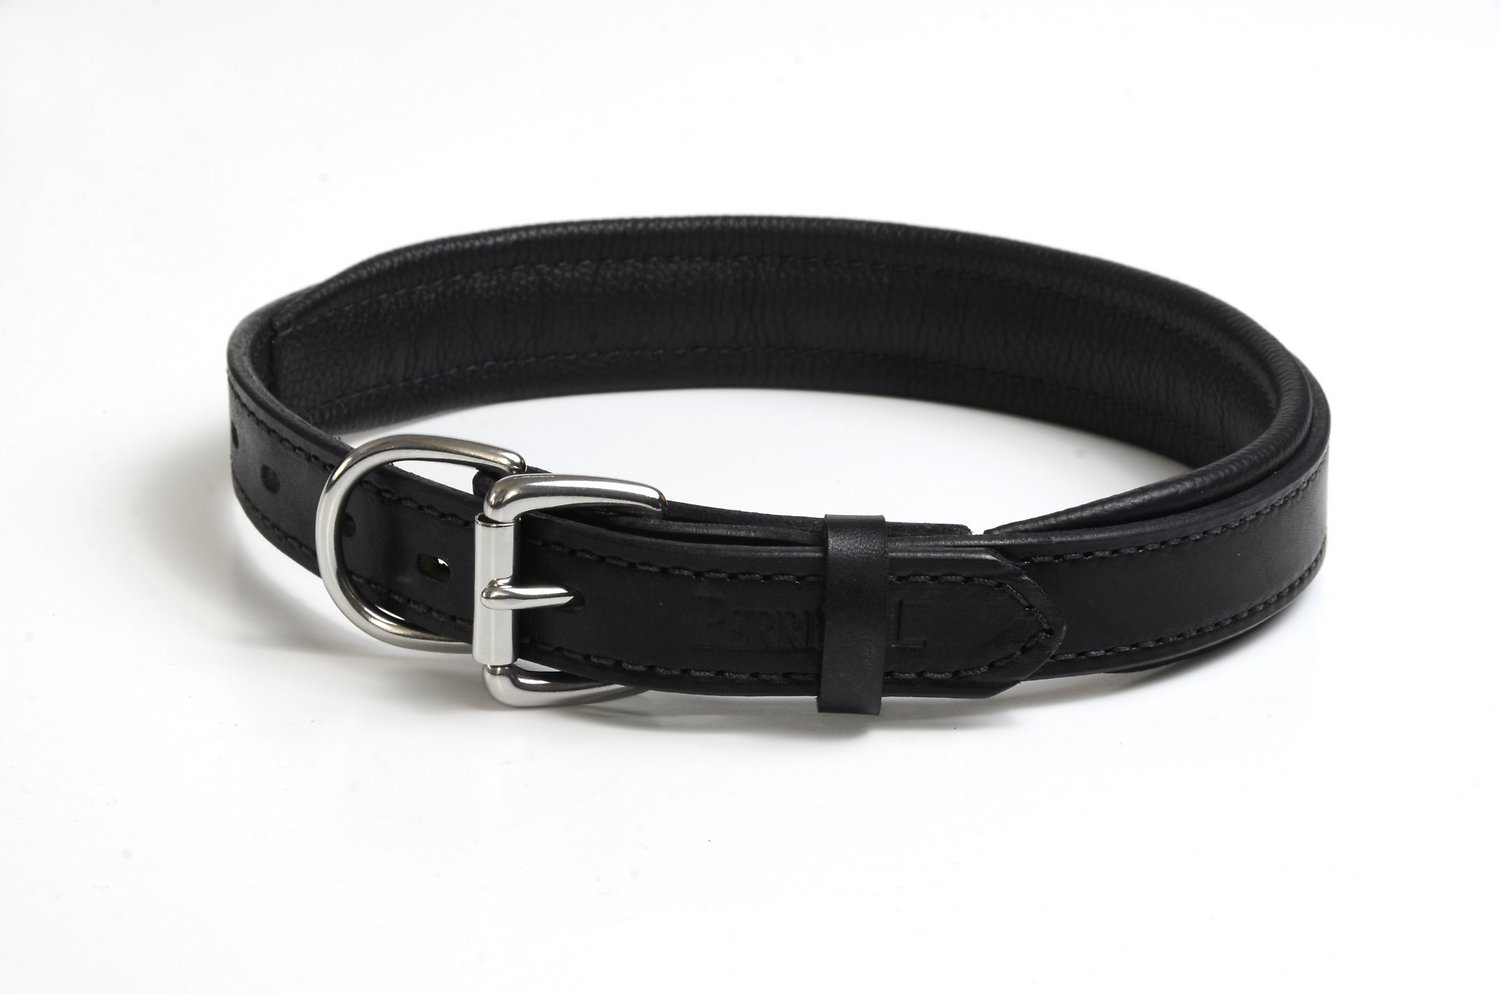 perri39s black padded leather dog collar black large With perri dog collar